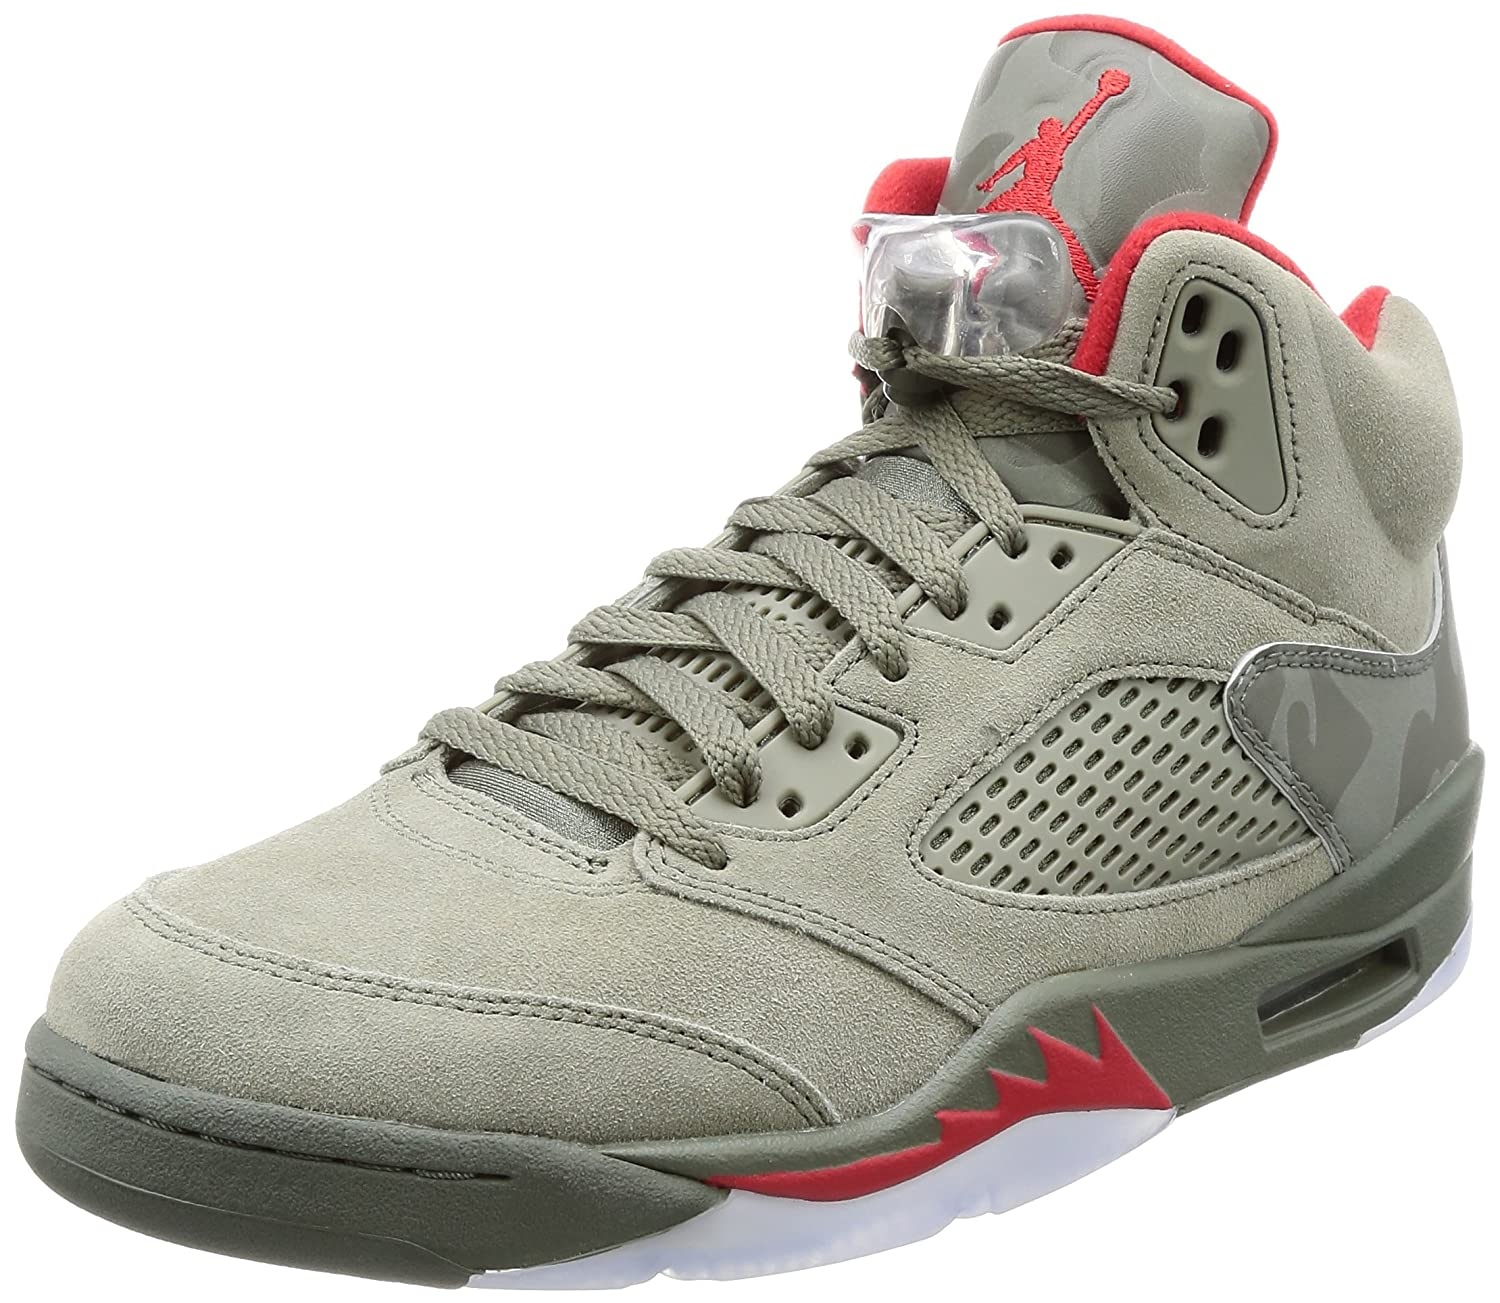 san francisco 286a8 a9bd0 Nike Air Jordan 5 Retro Mens Hi Top Basketball Trainers 136027 Sneakers  Shoes (UK 8 US 9 EU 42.5